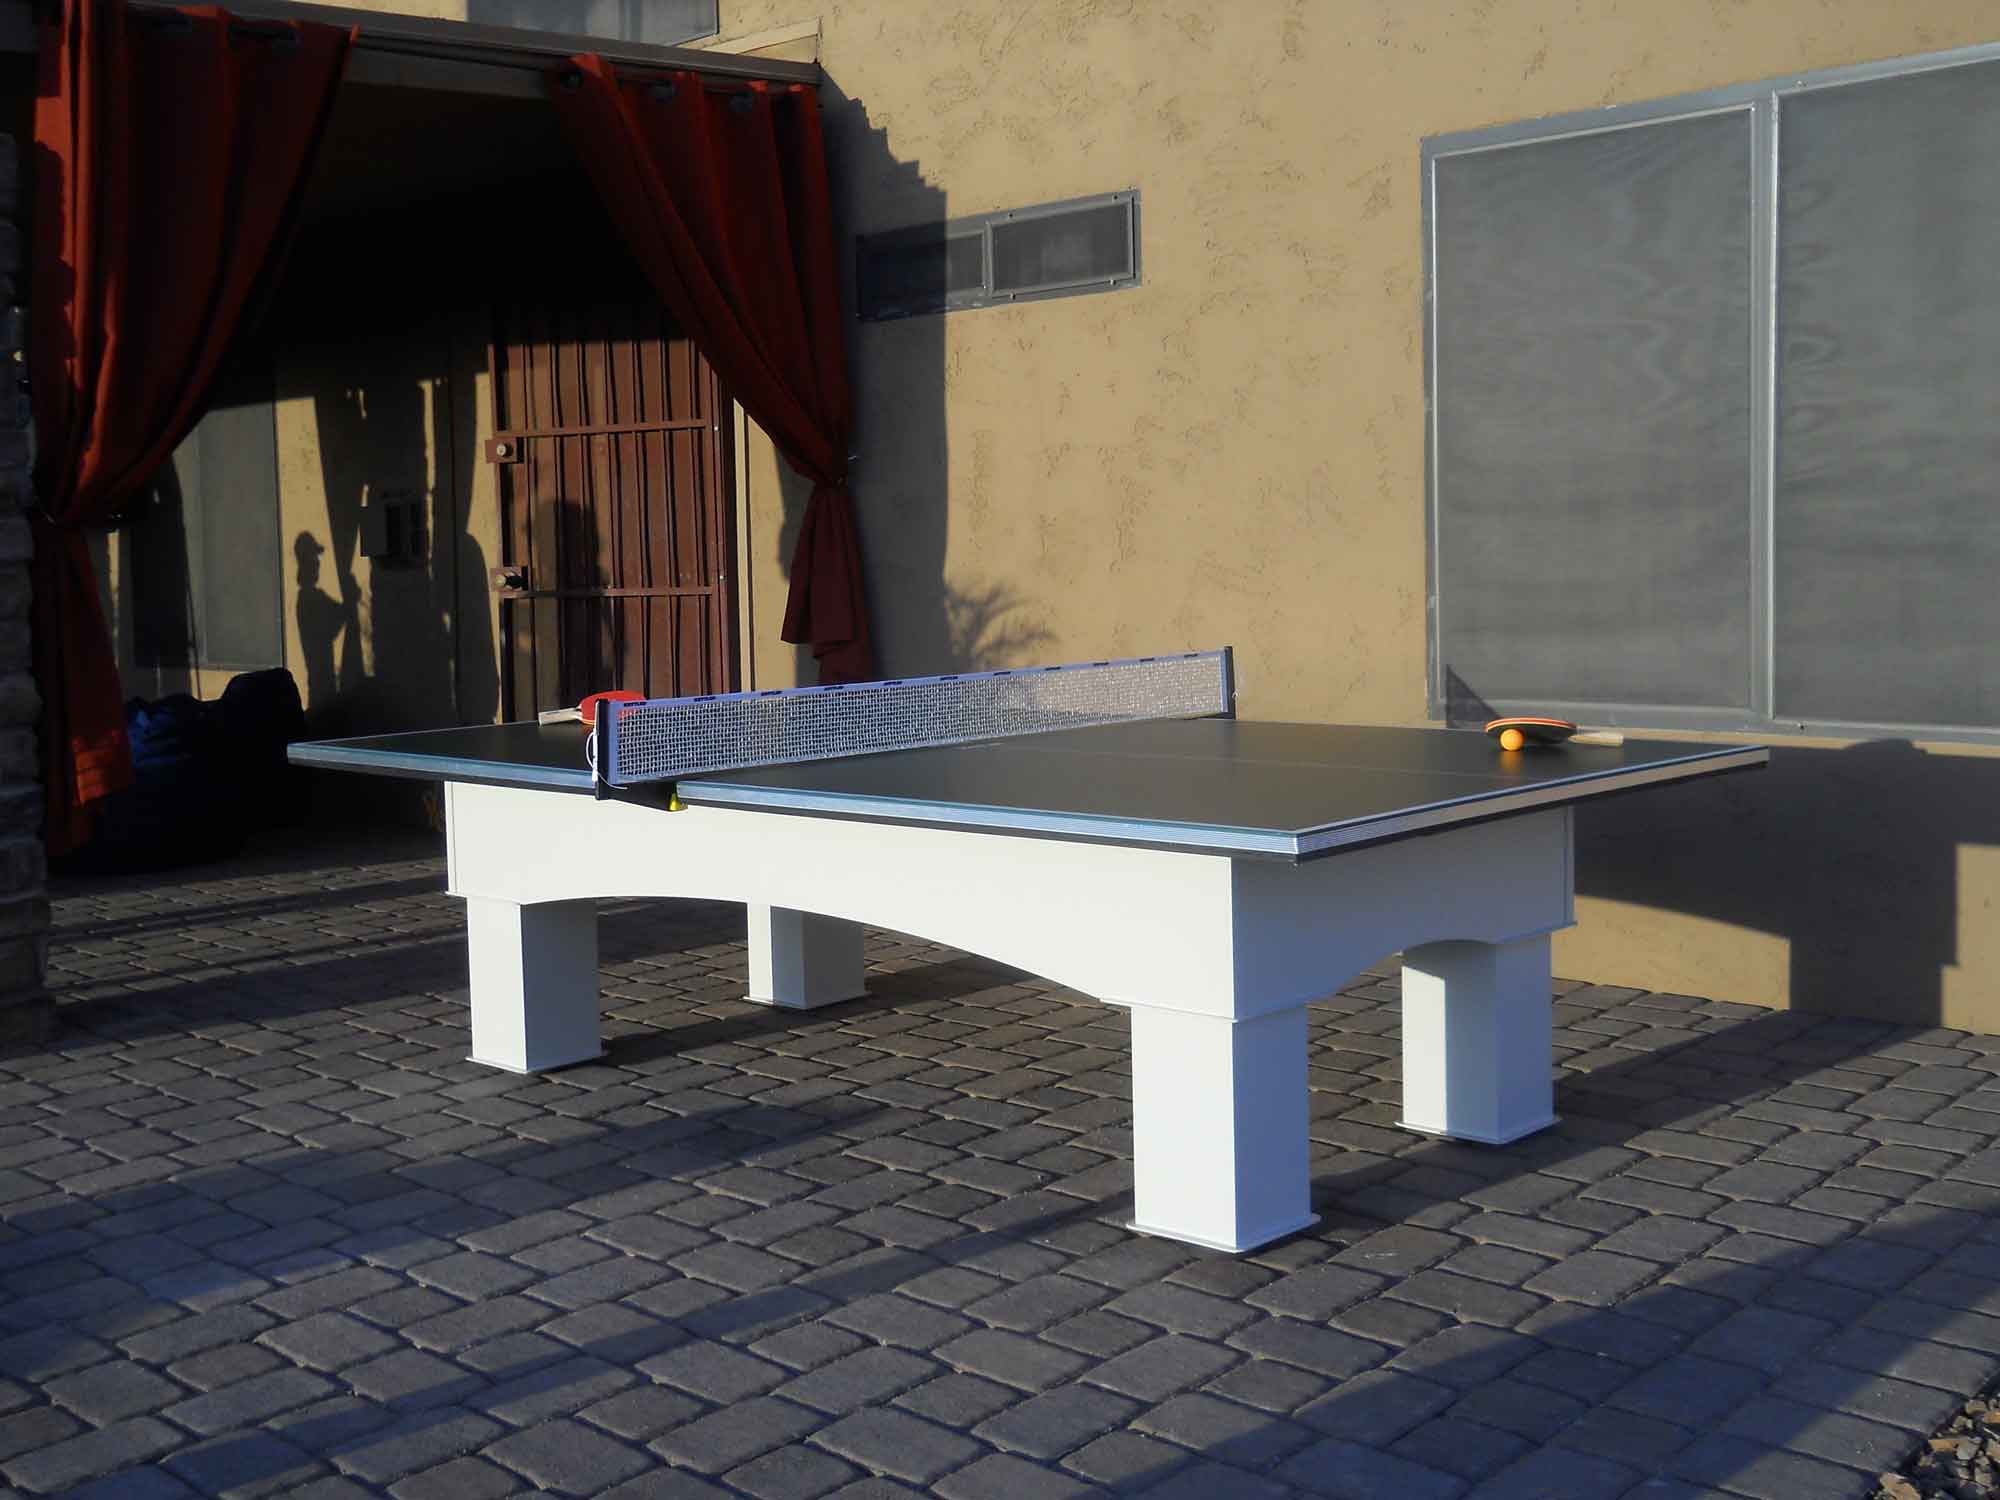 Outdoor table tennis game table from R&R Outdoors All Weather Billiards